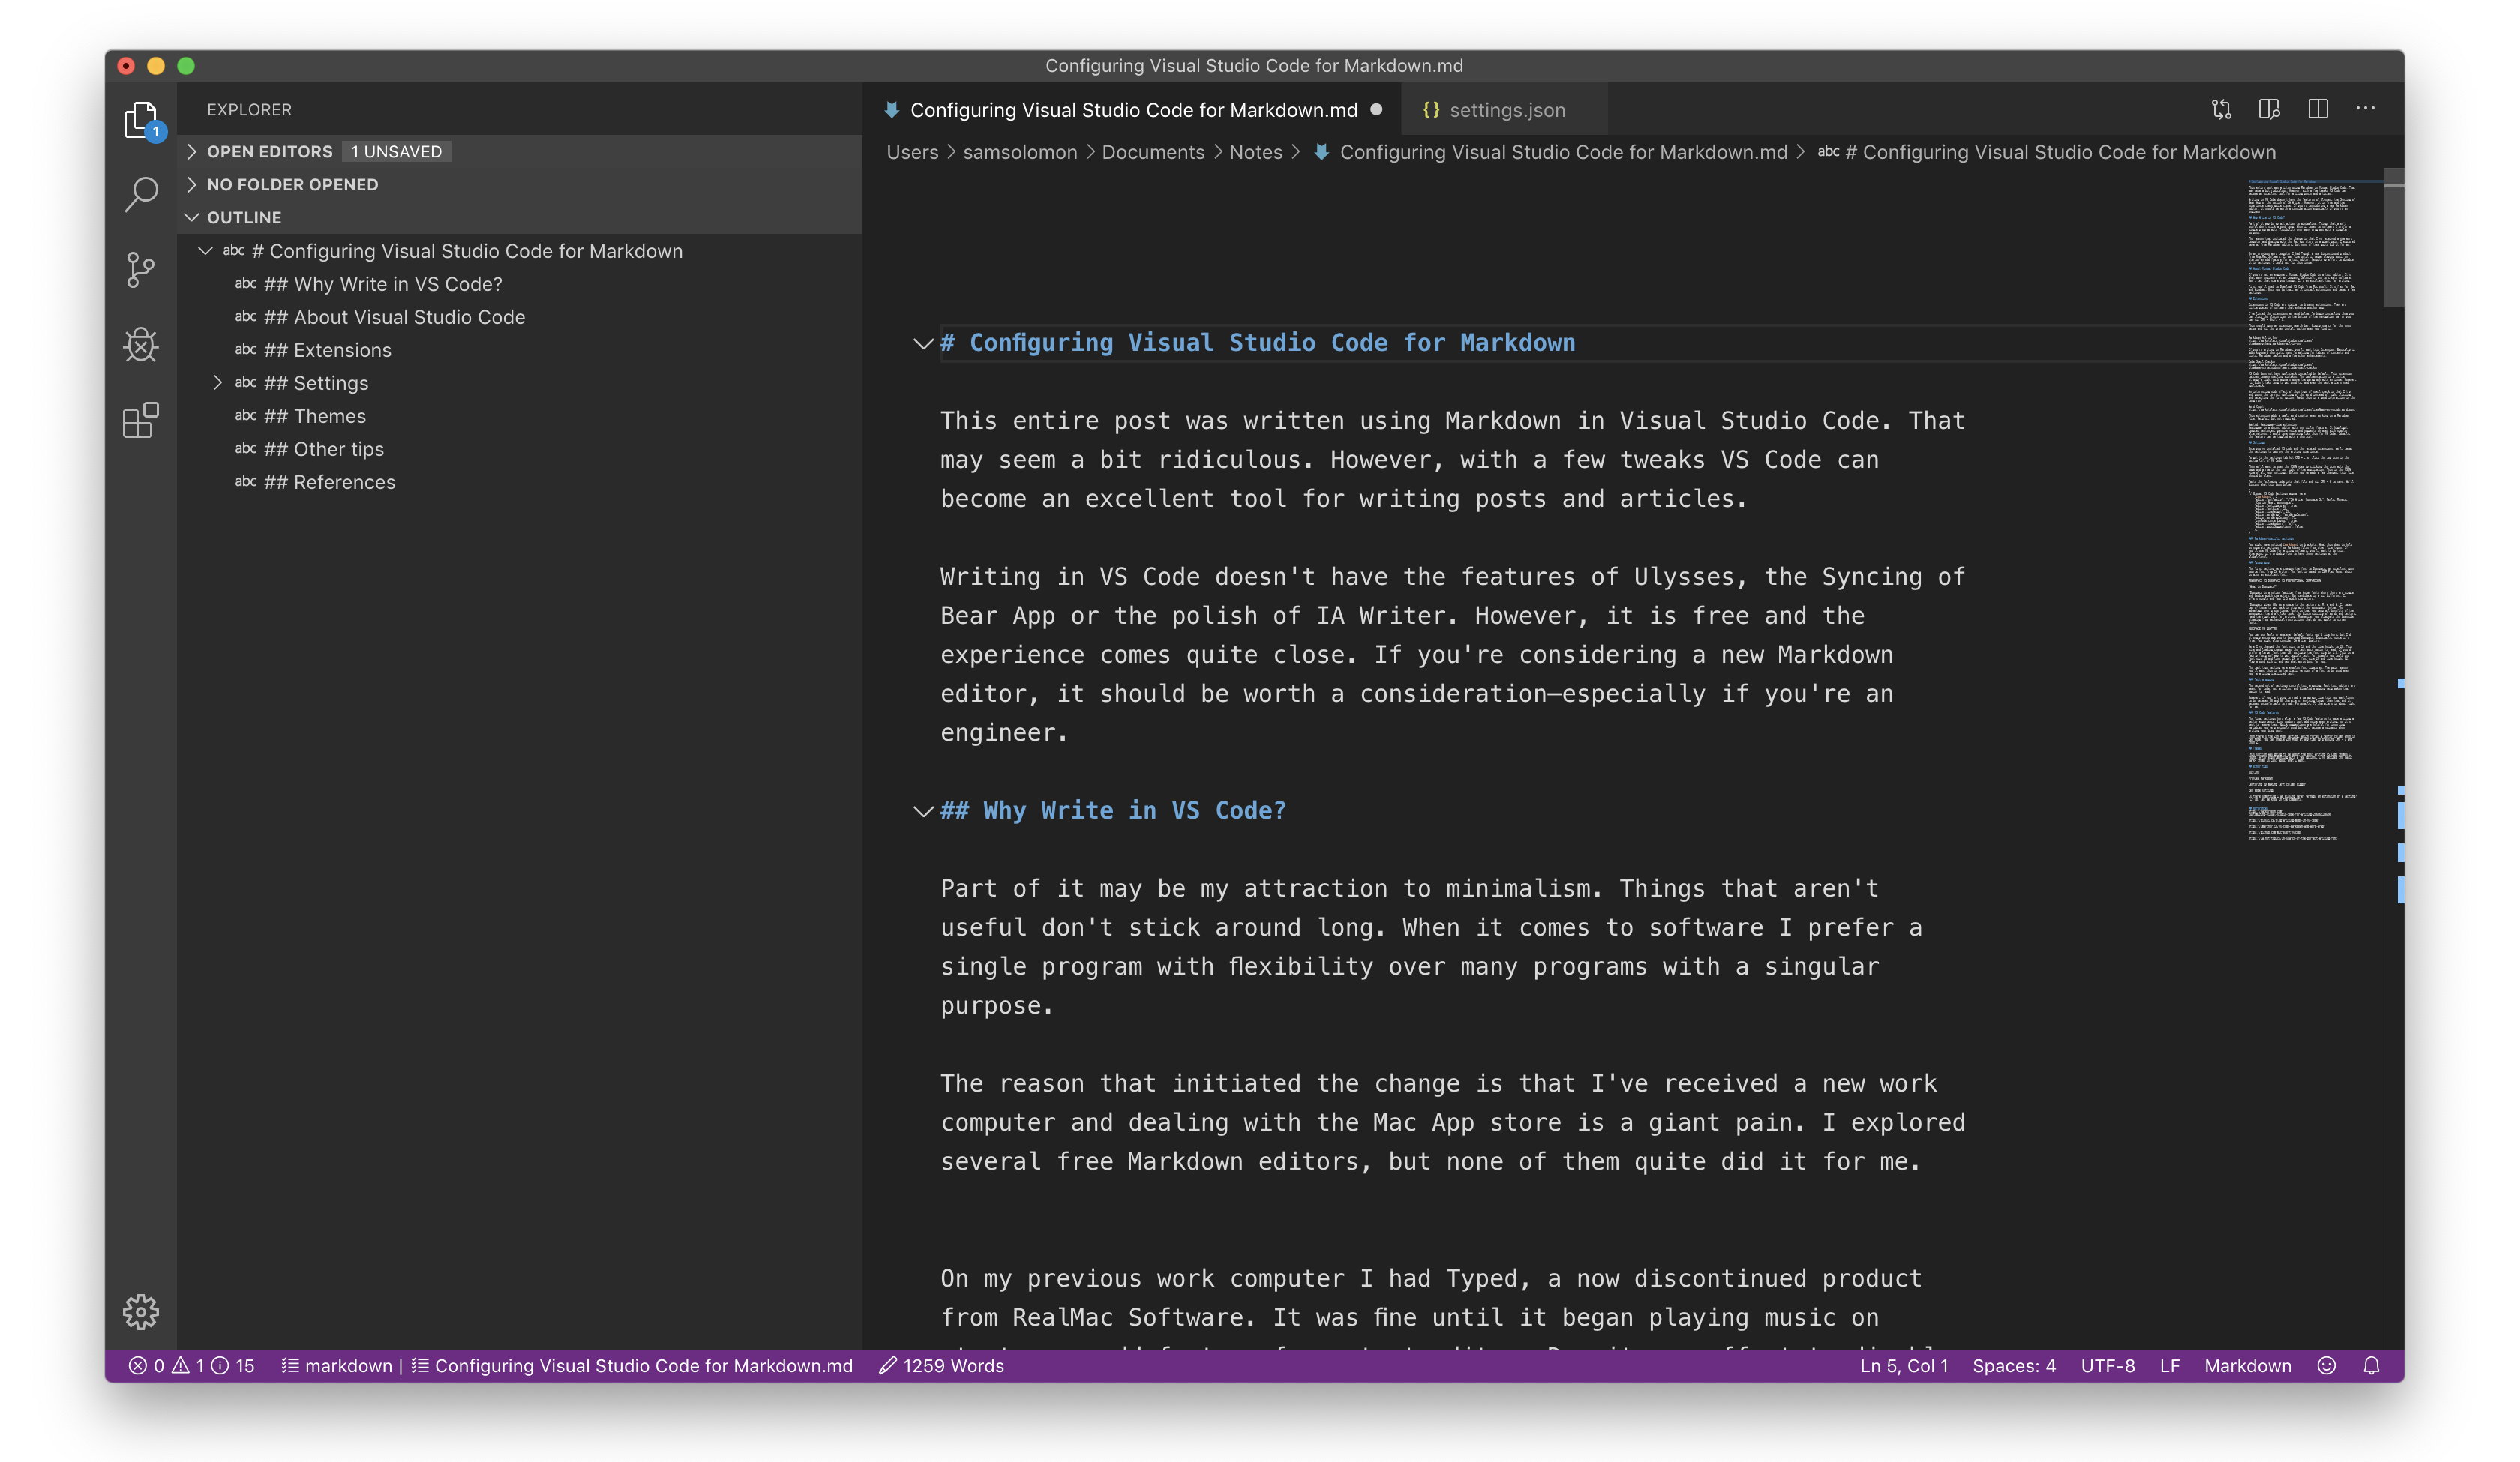 Configuring Visual Studio Code for Markdown